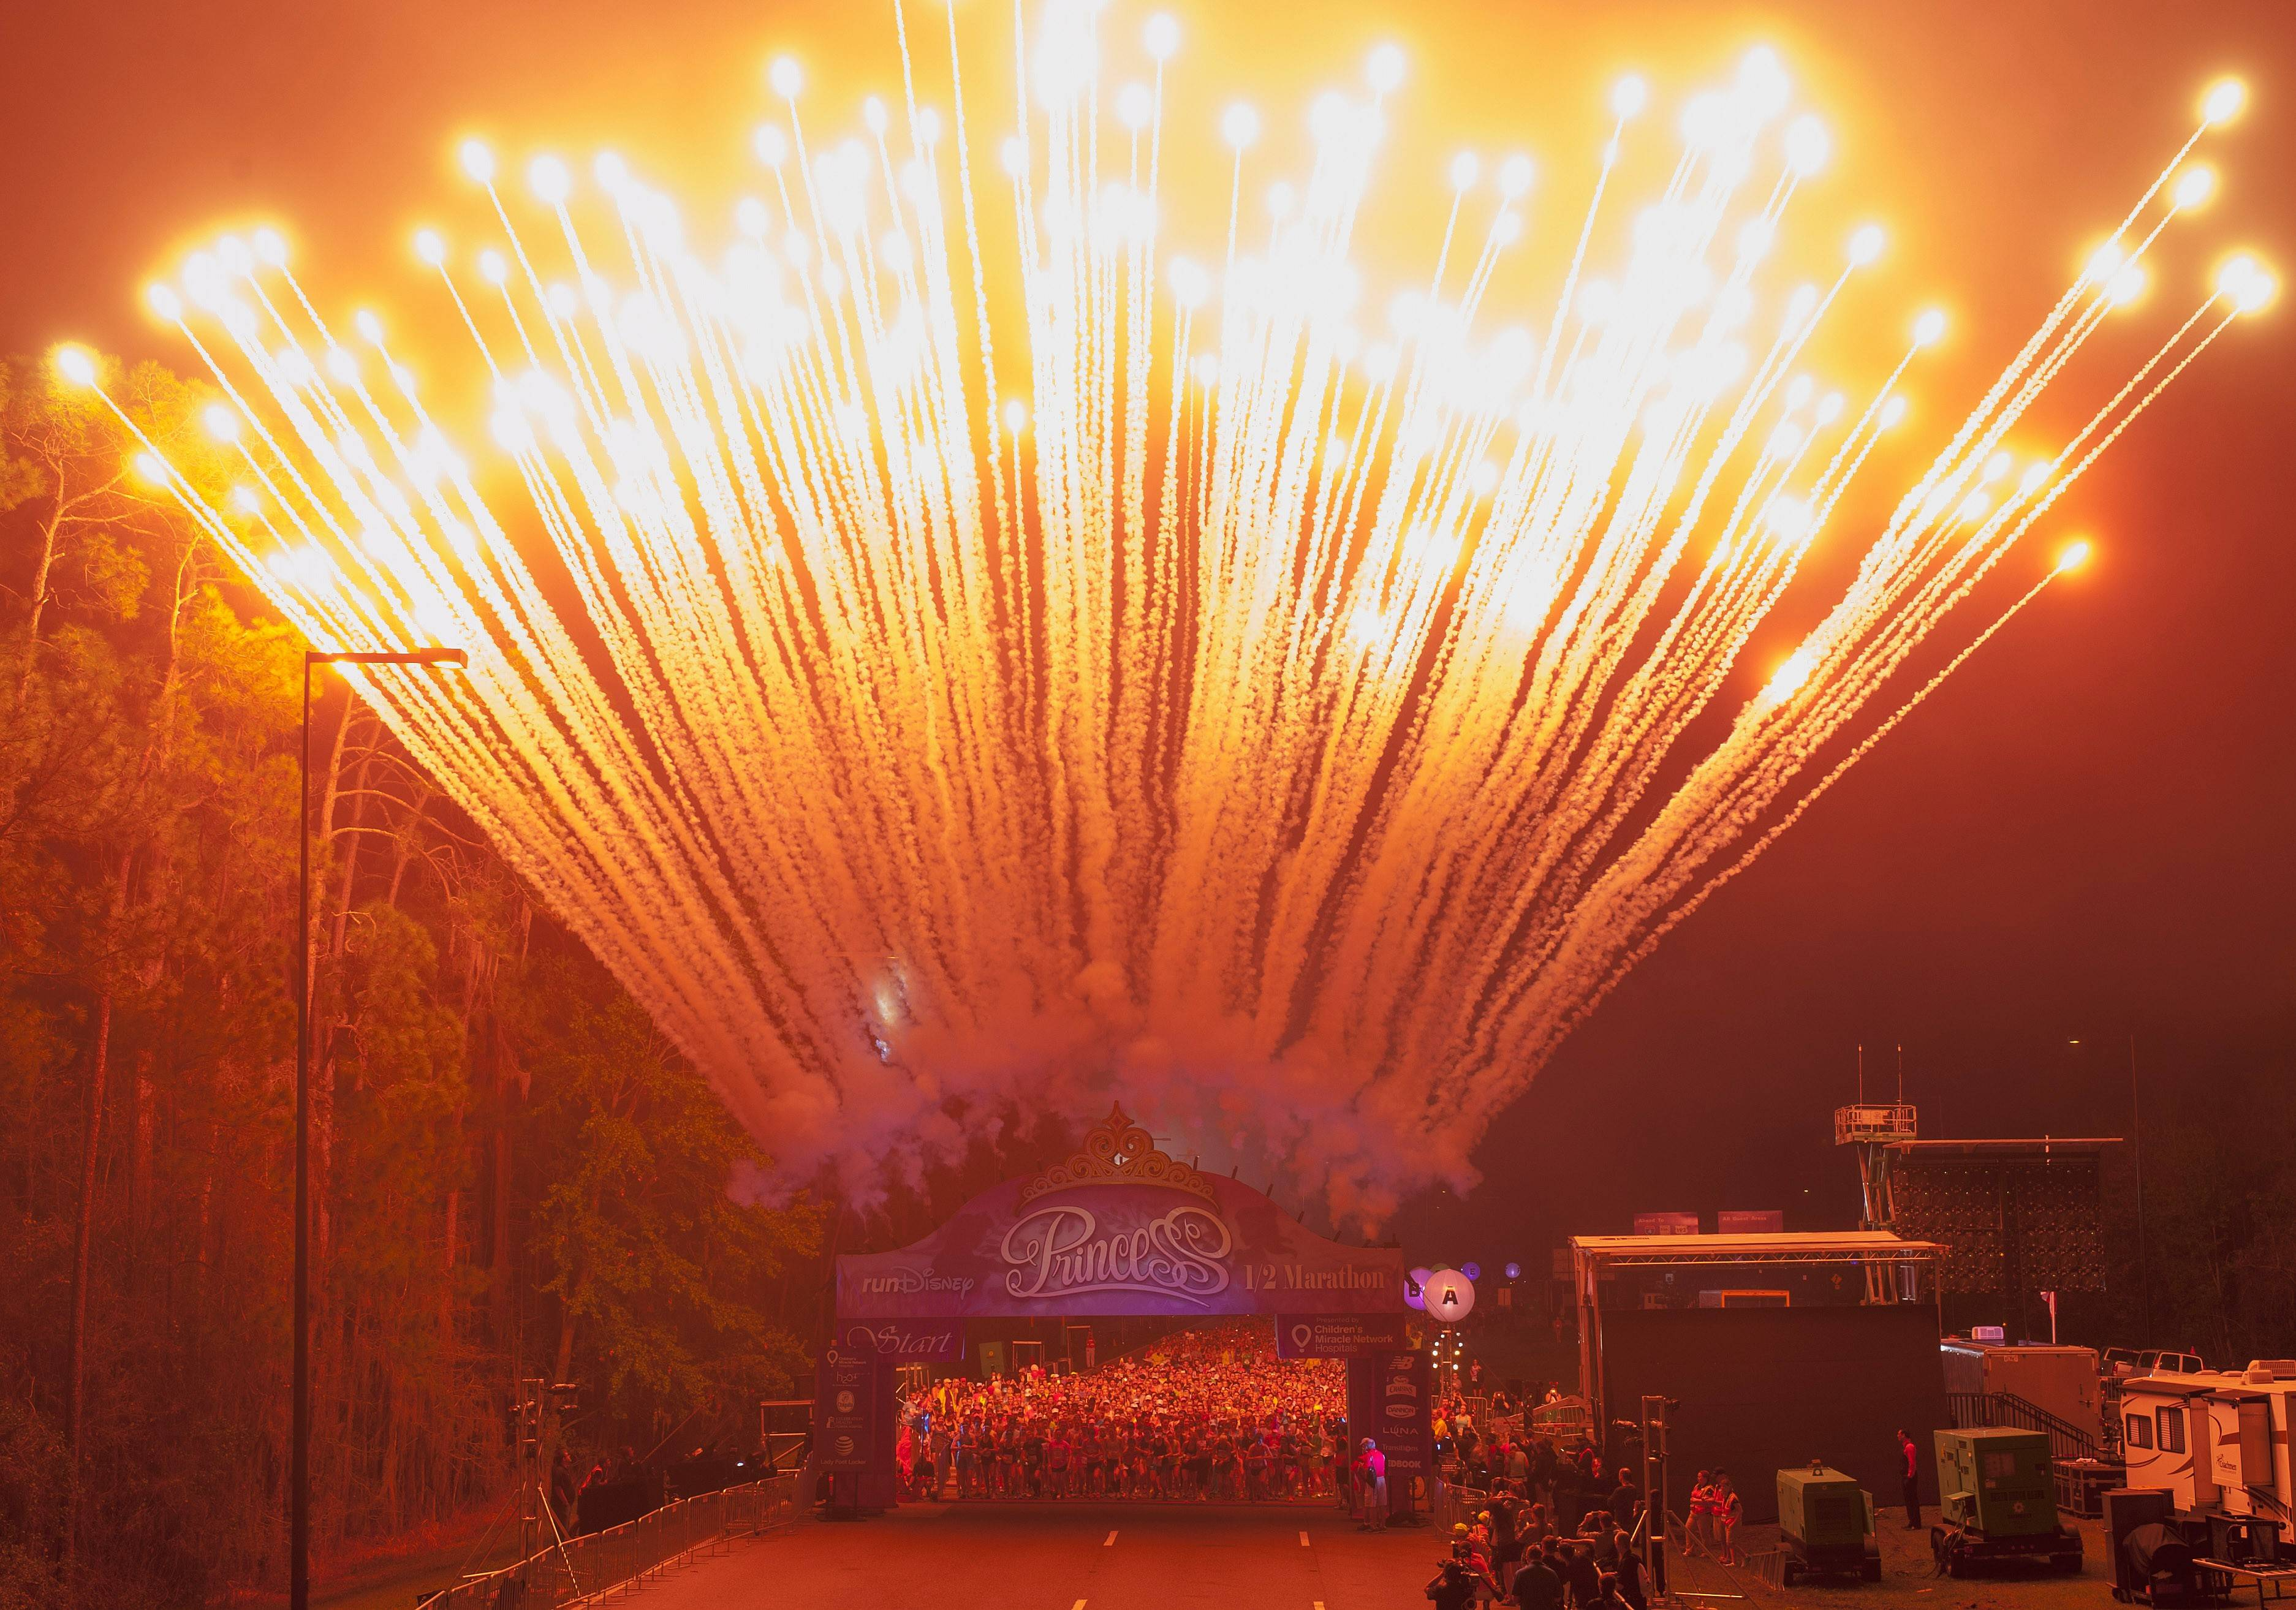 Fireworks signal the start of the 2014 Disney Princess Half Marathon last month at Florida's Walt Disney World Resort.